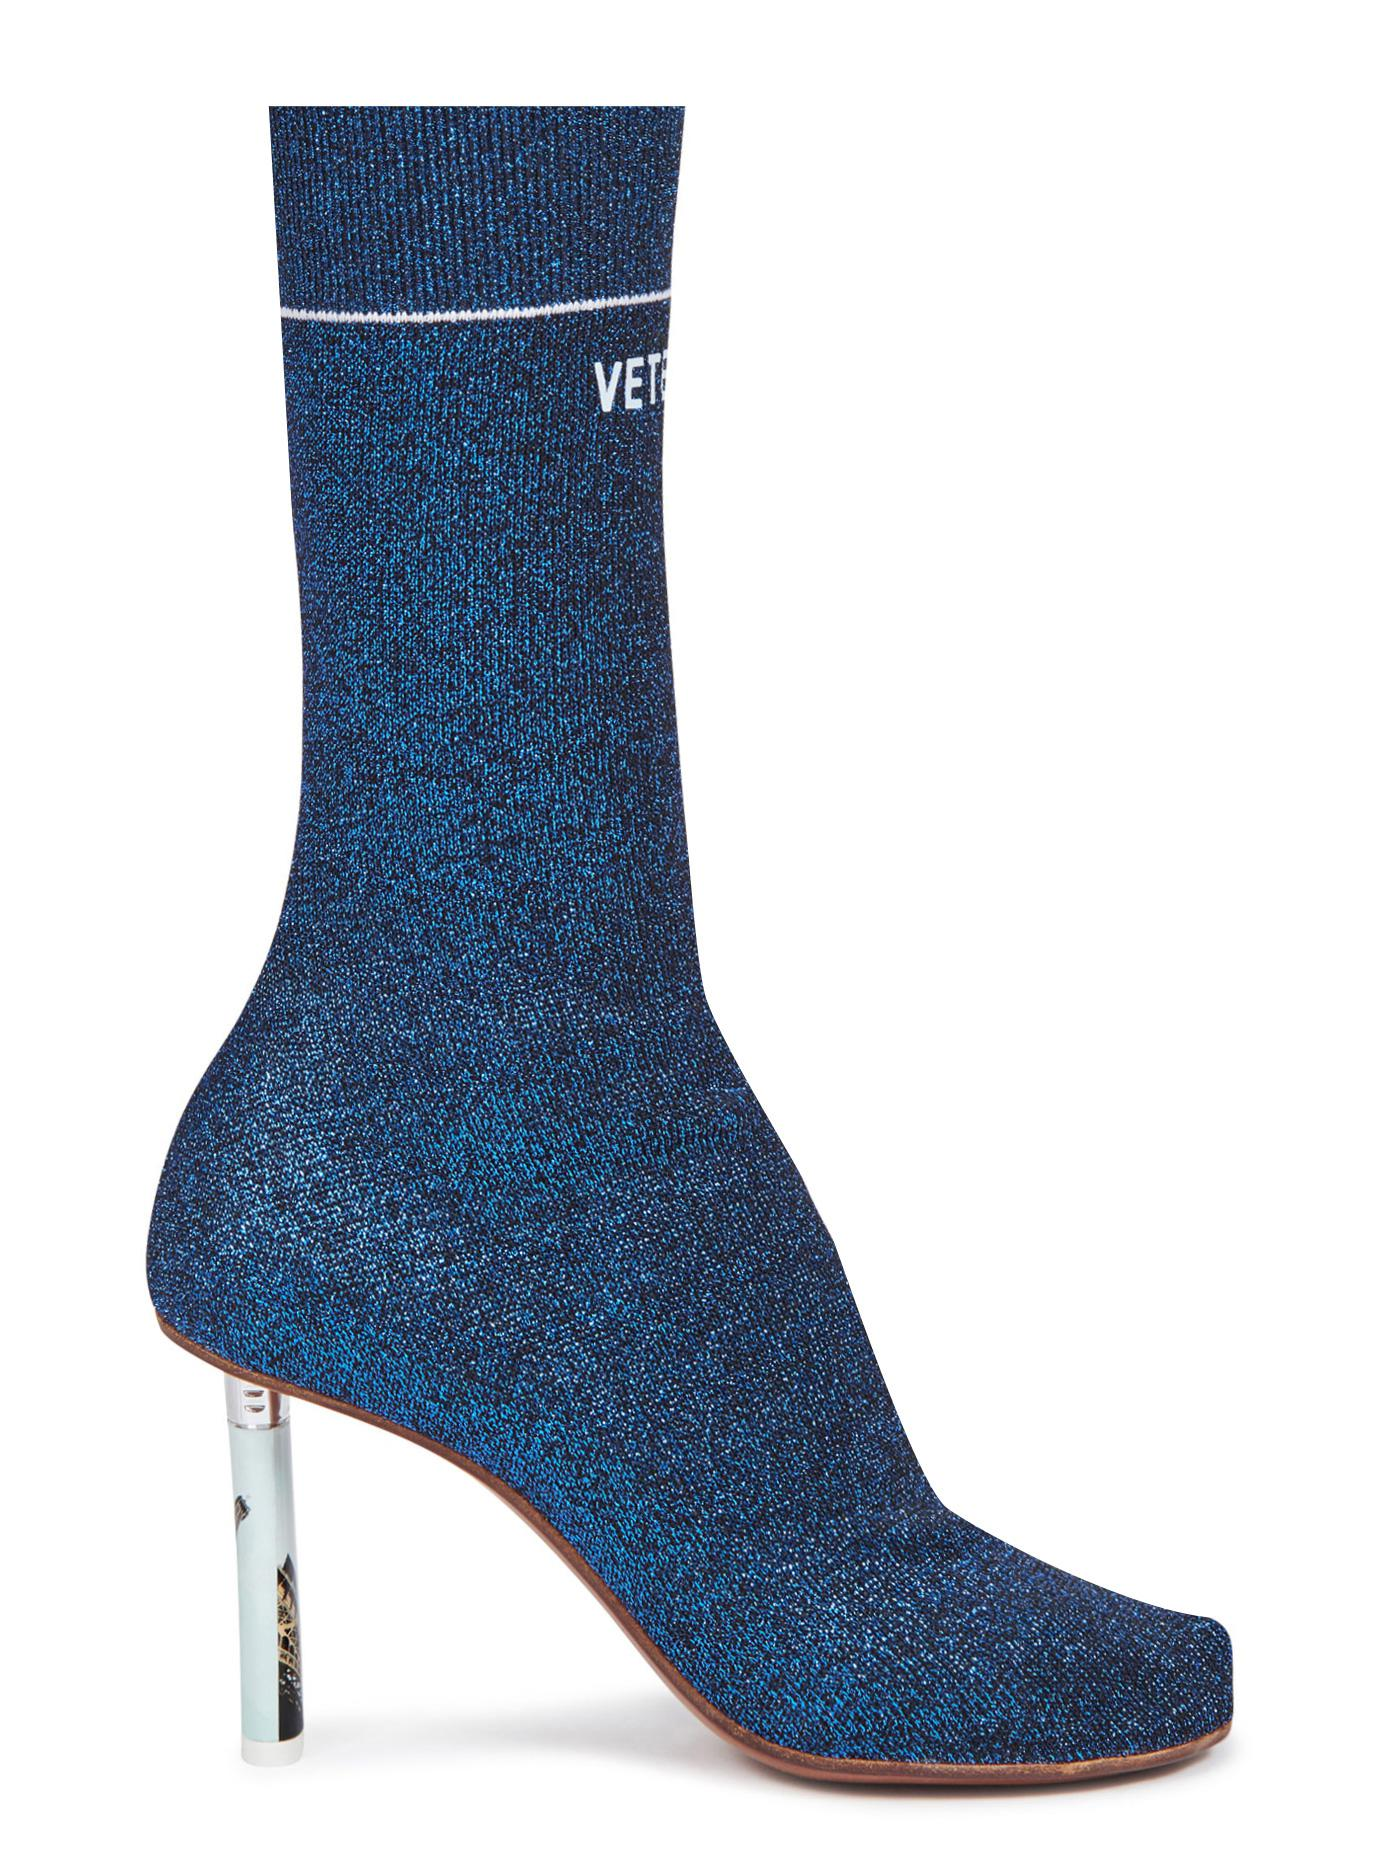 Vetements Cotton Lighter Heel Sock Ankle Boots In Blue Lyst